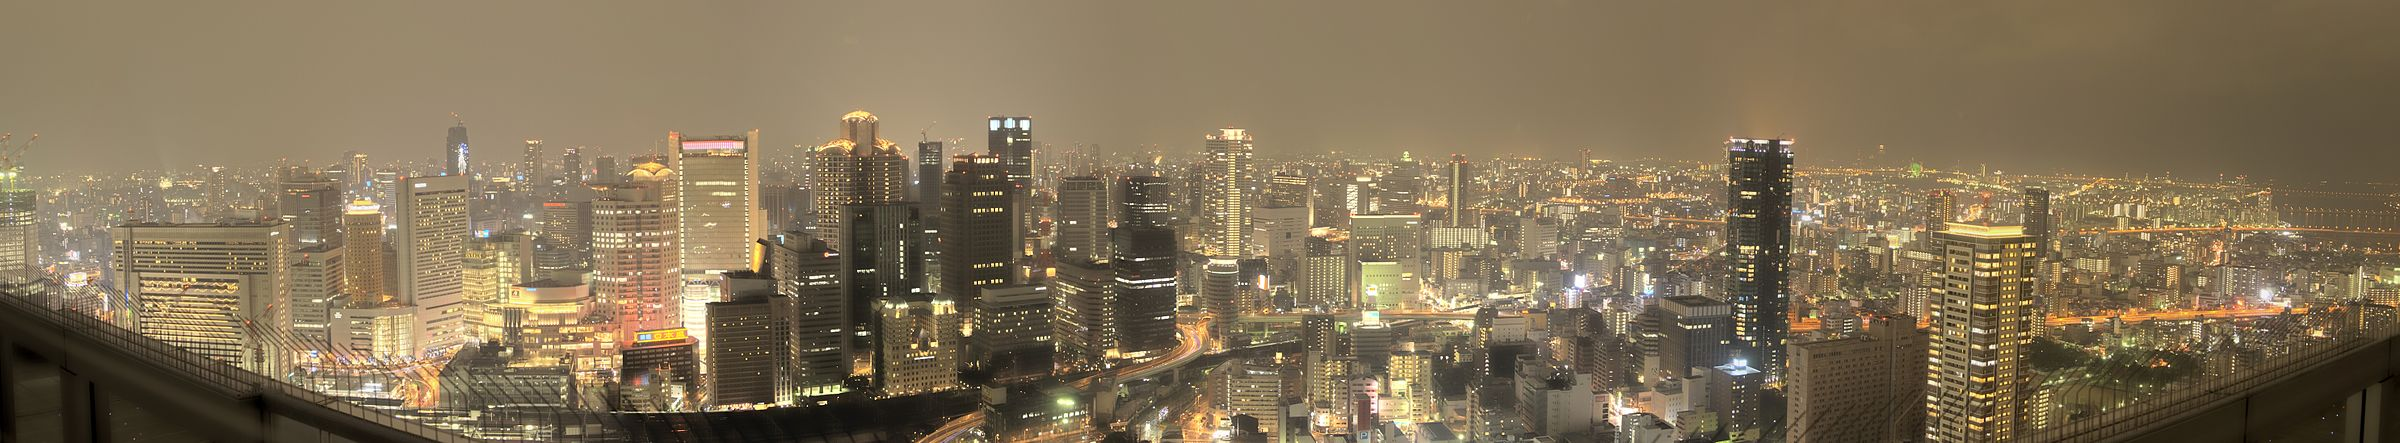 Osaka skyline at night from Umeda Sky Building - Osaka